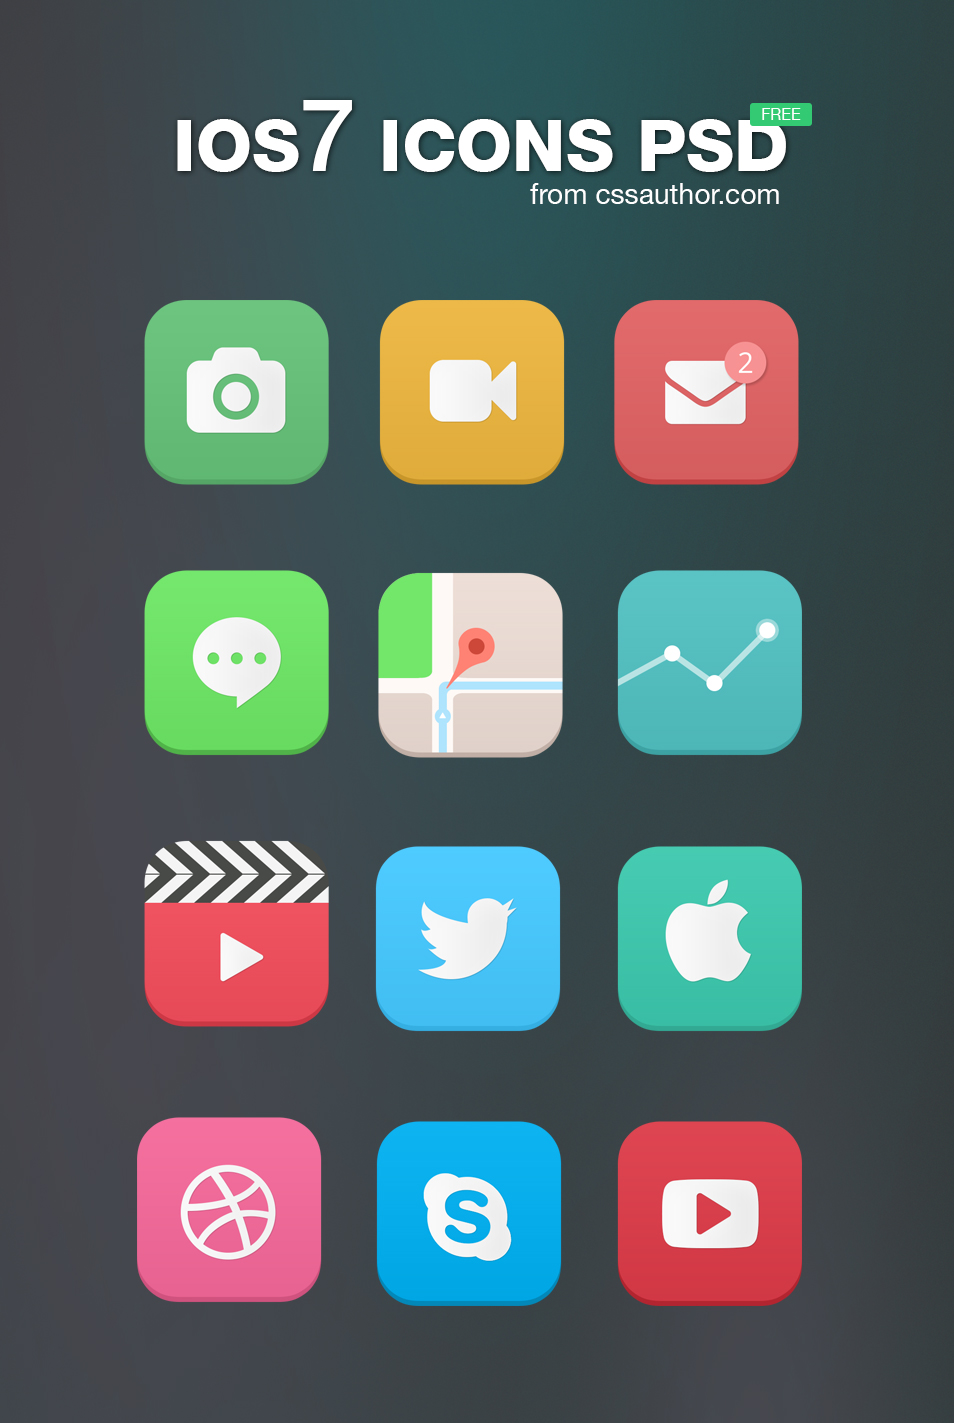 Free iOS7 Icons PSD